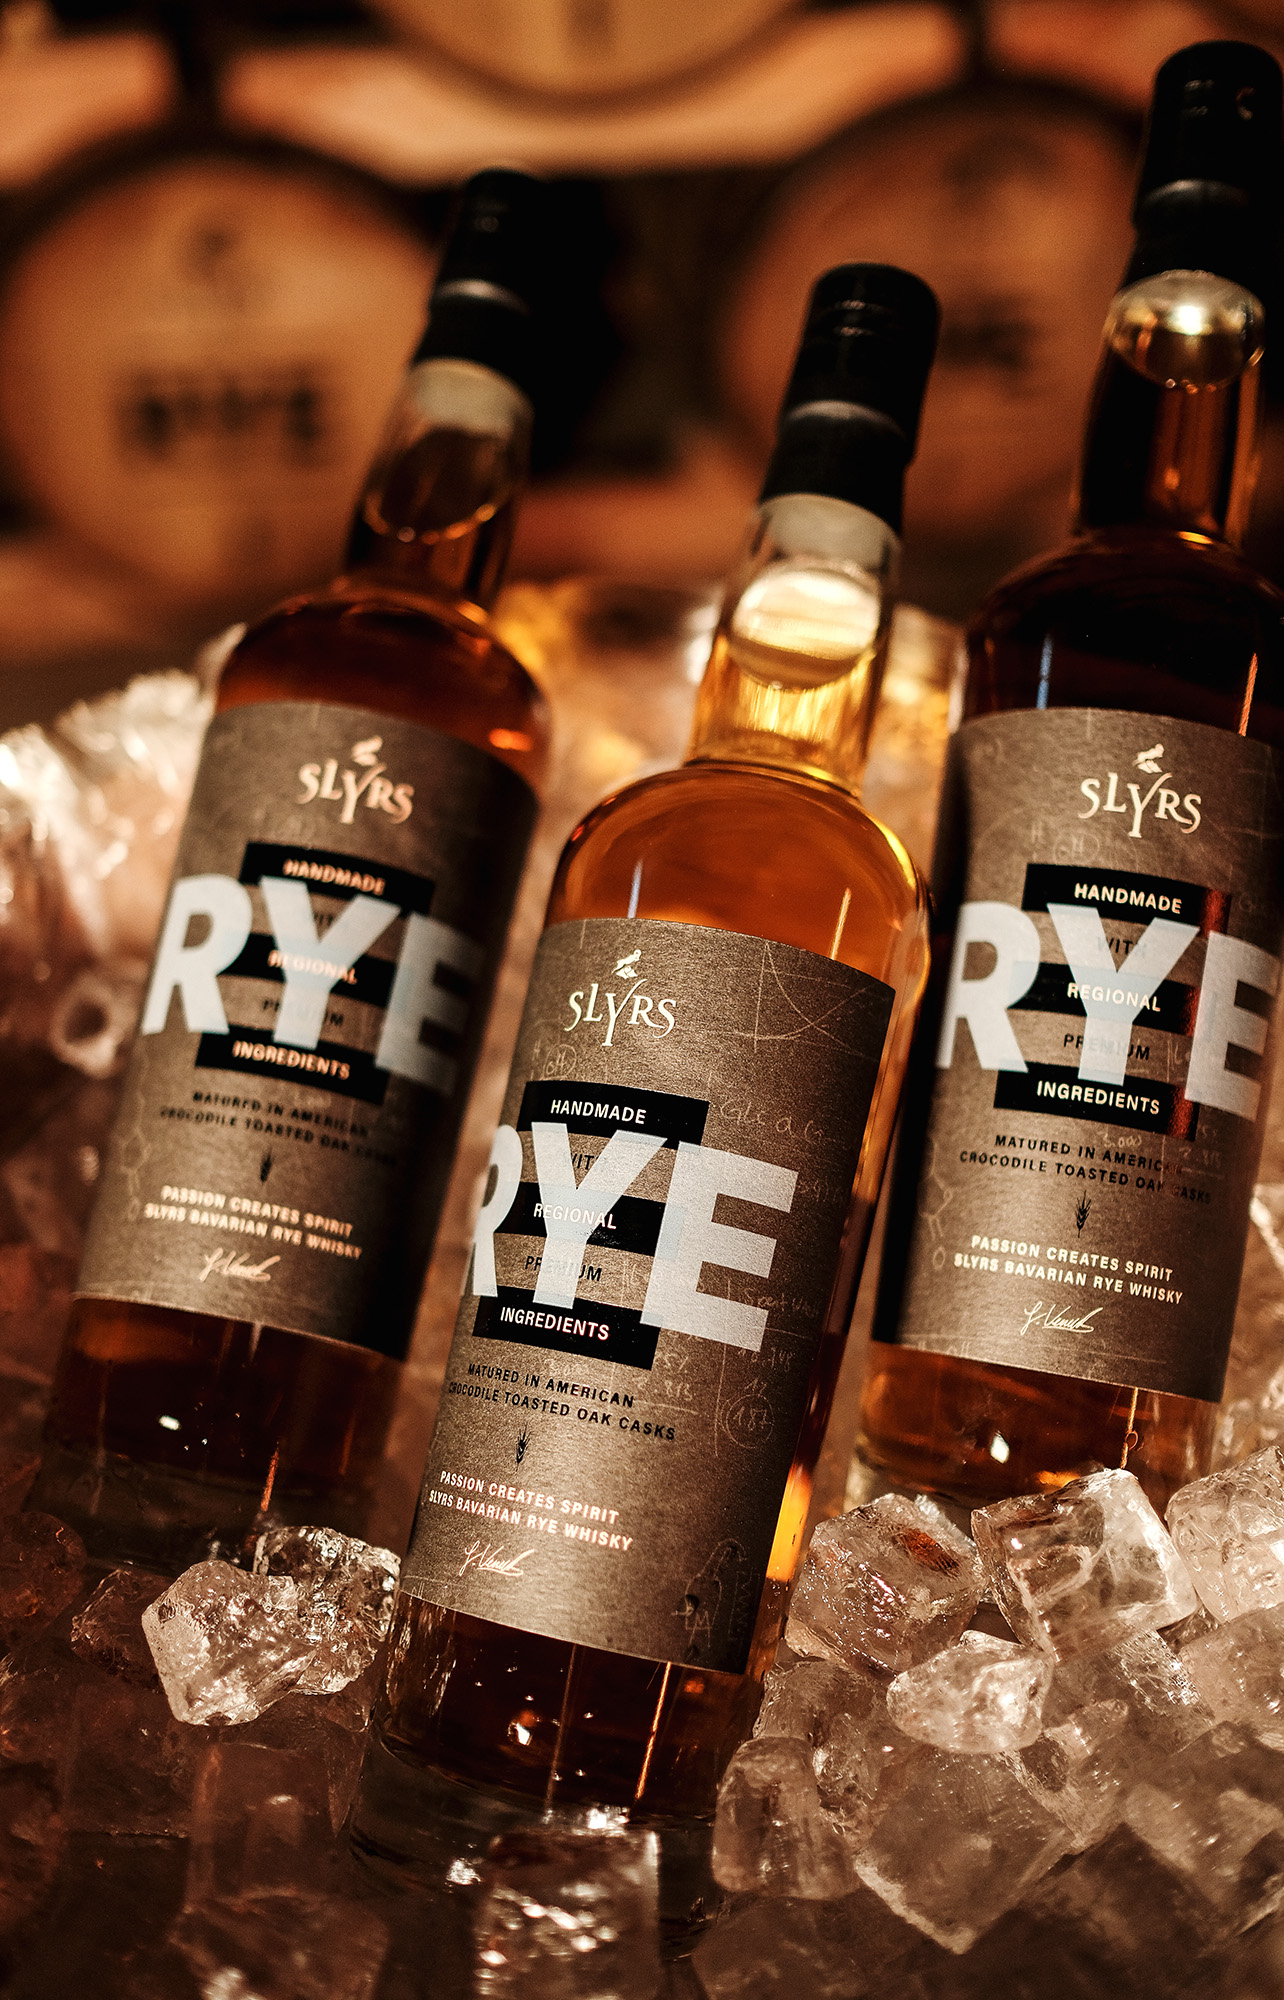 Germany Slyrs Rye Whisky Packaging Designed Michael Hanauer